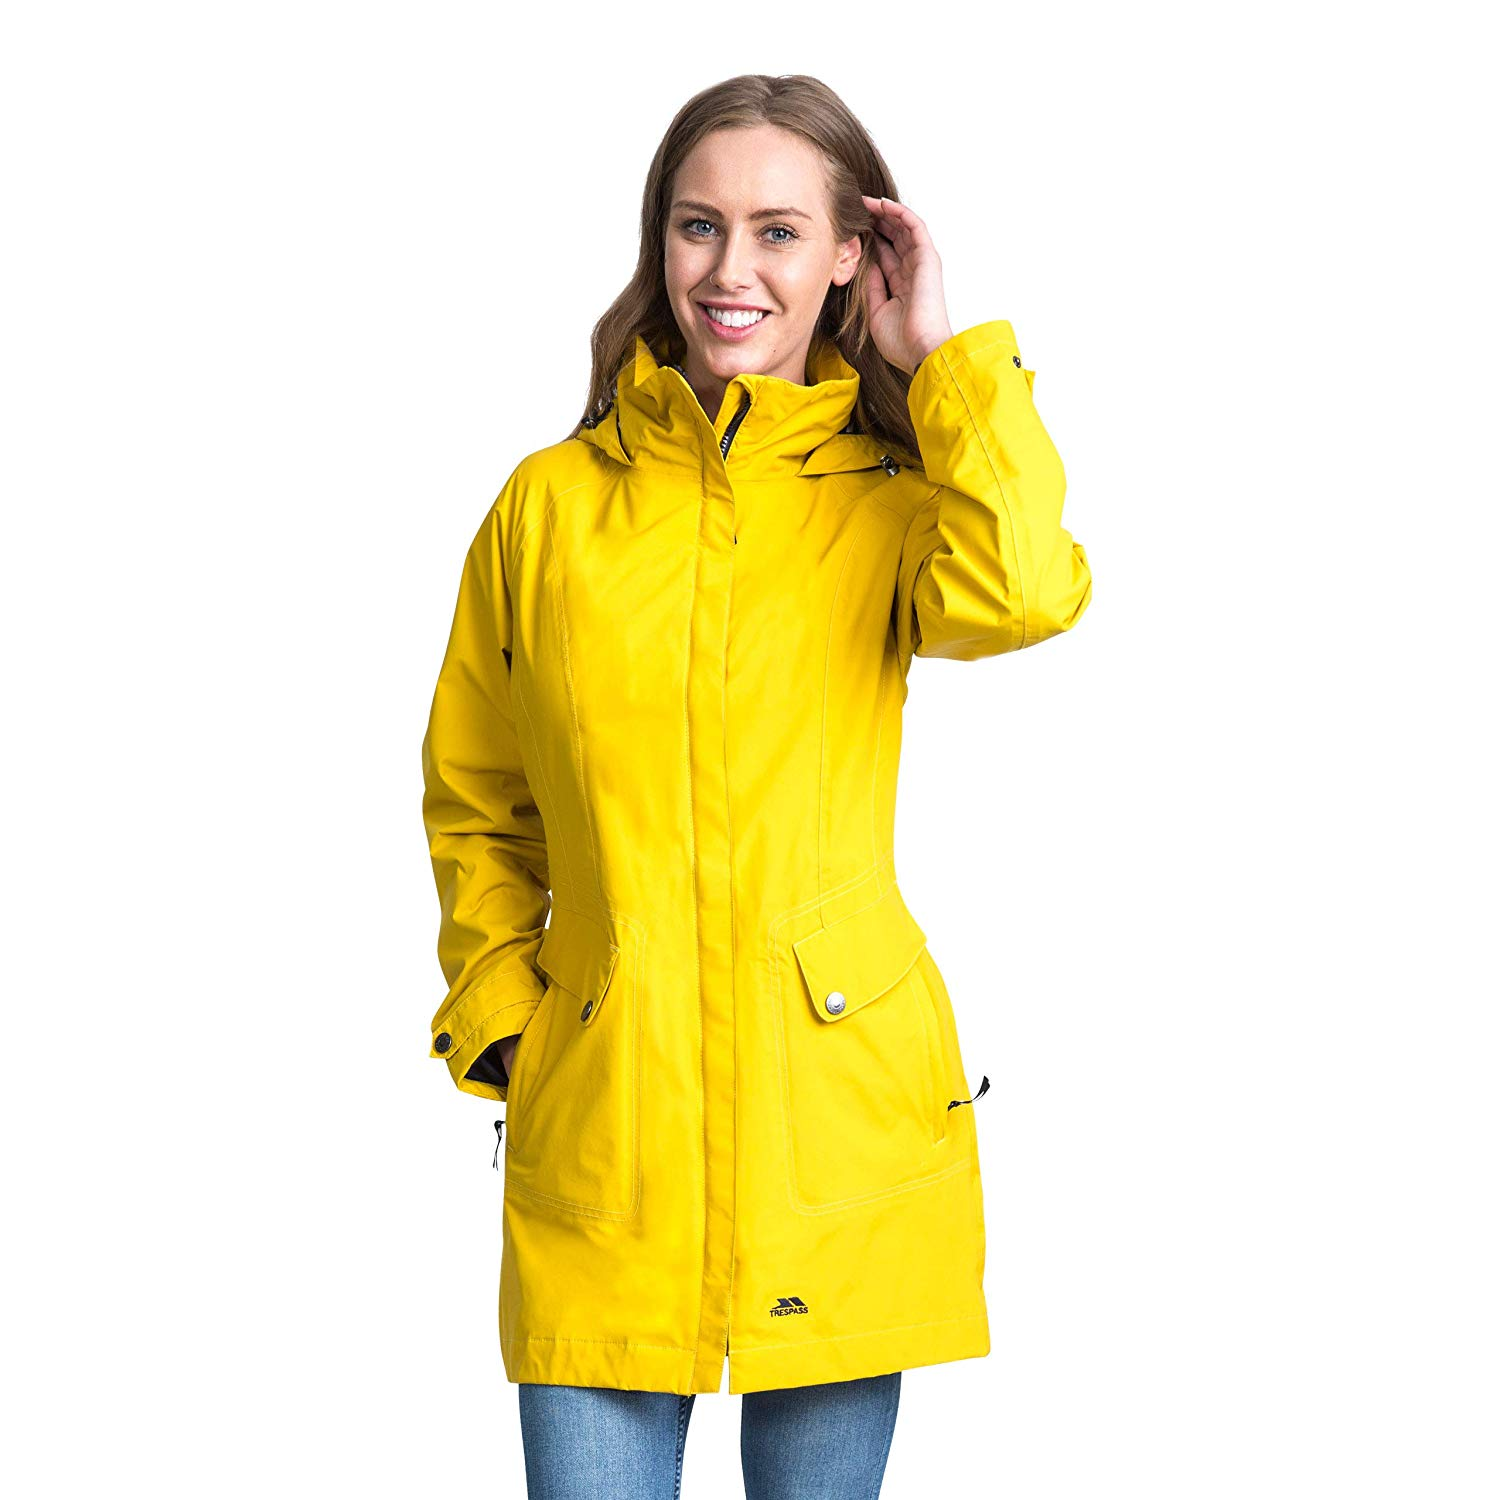 Trespass Outdoorjacke Damen Regenjacke Rainy Day wasserfest mit Kapuze